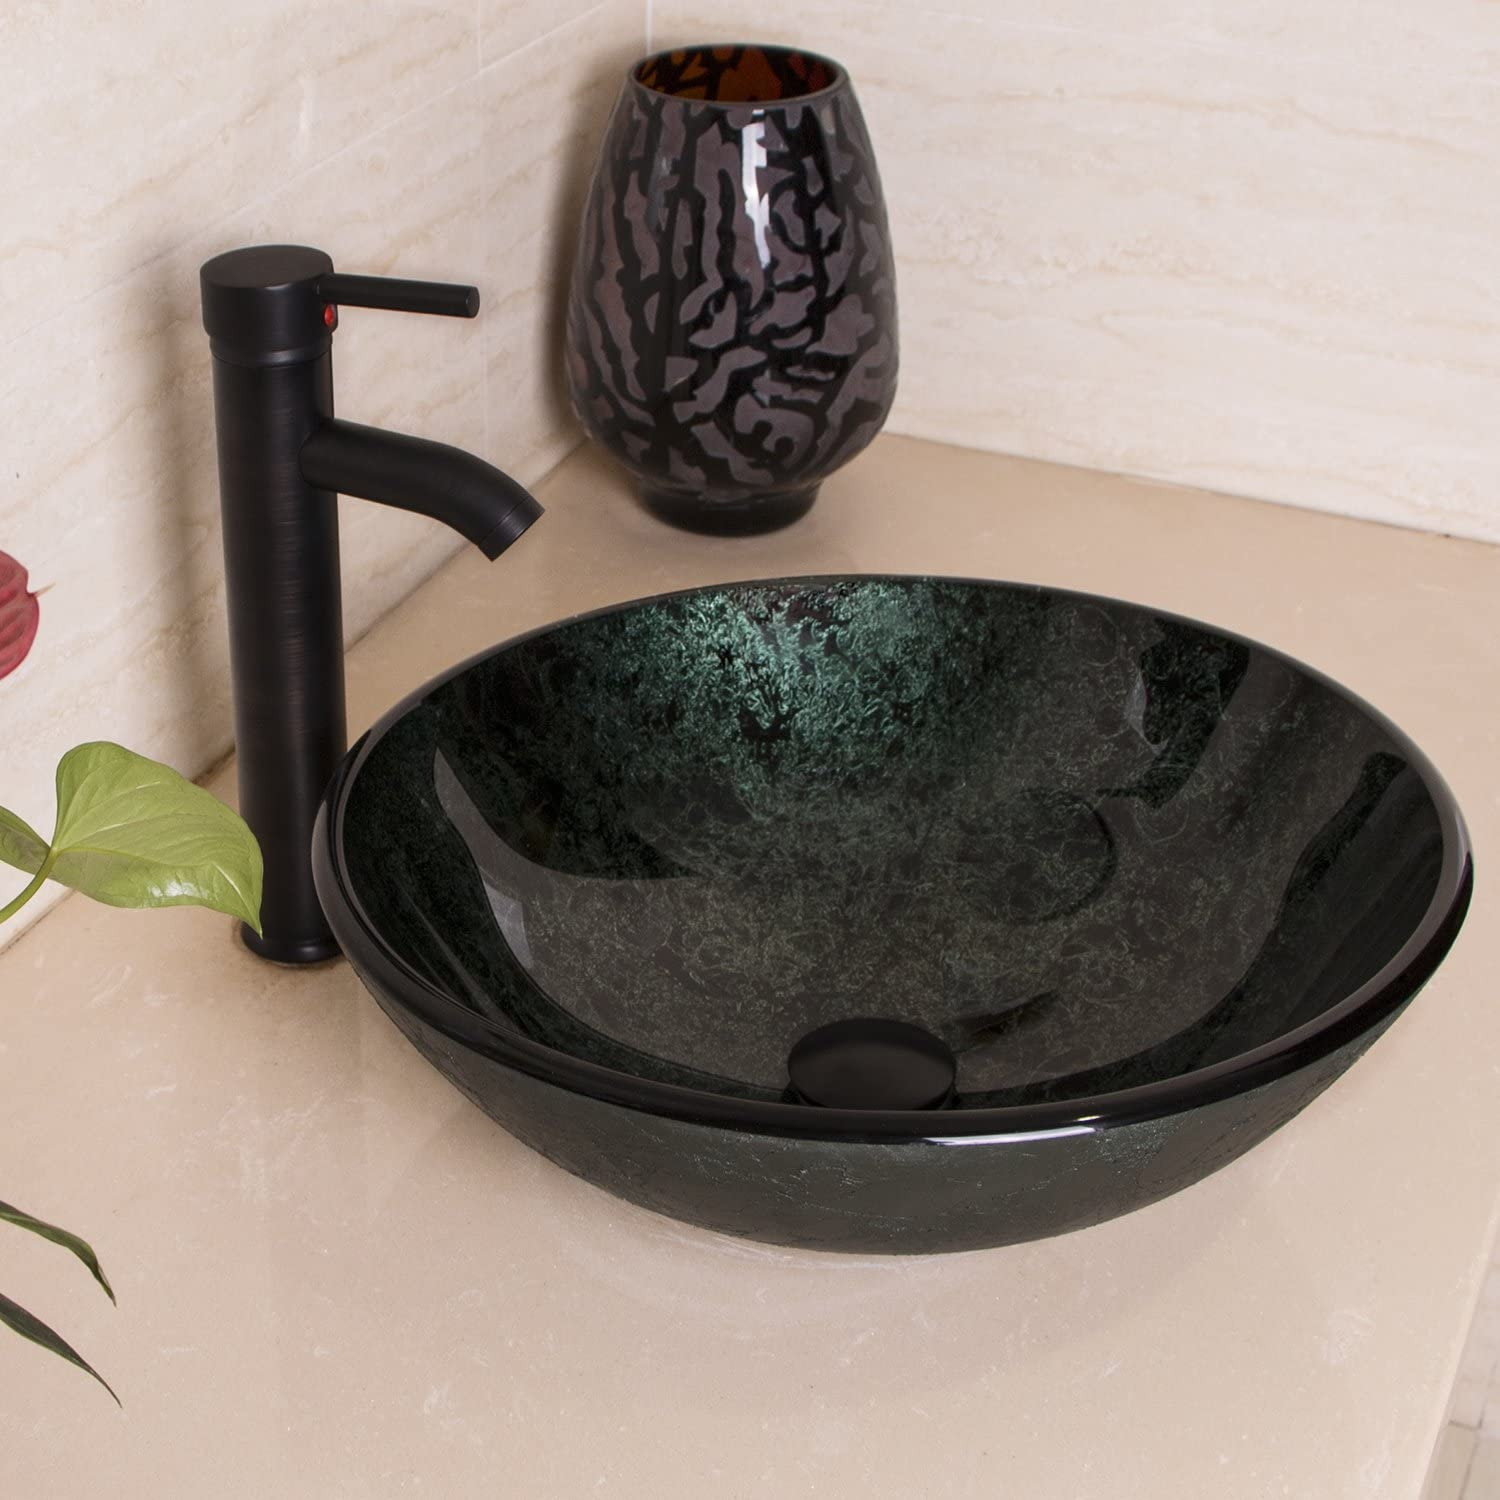 Sliverylake Dark Green Glass Vessel Sink Bathroom Combo Bowl with ORB Oil Rubbed Bronze Faucet and Matching Drain